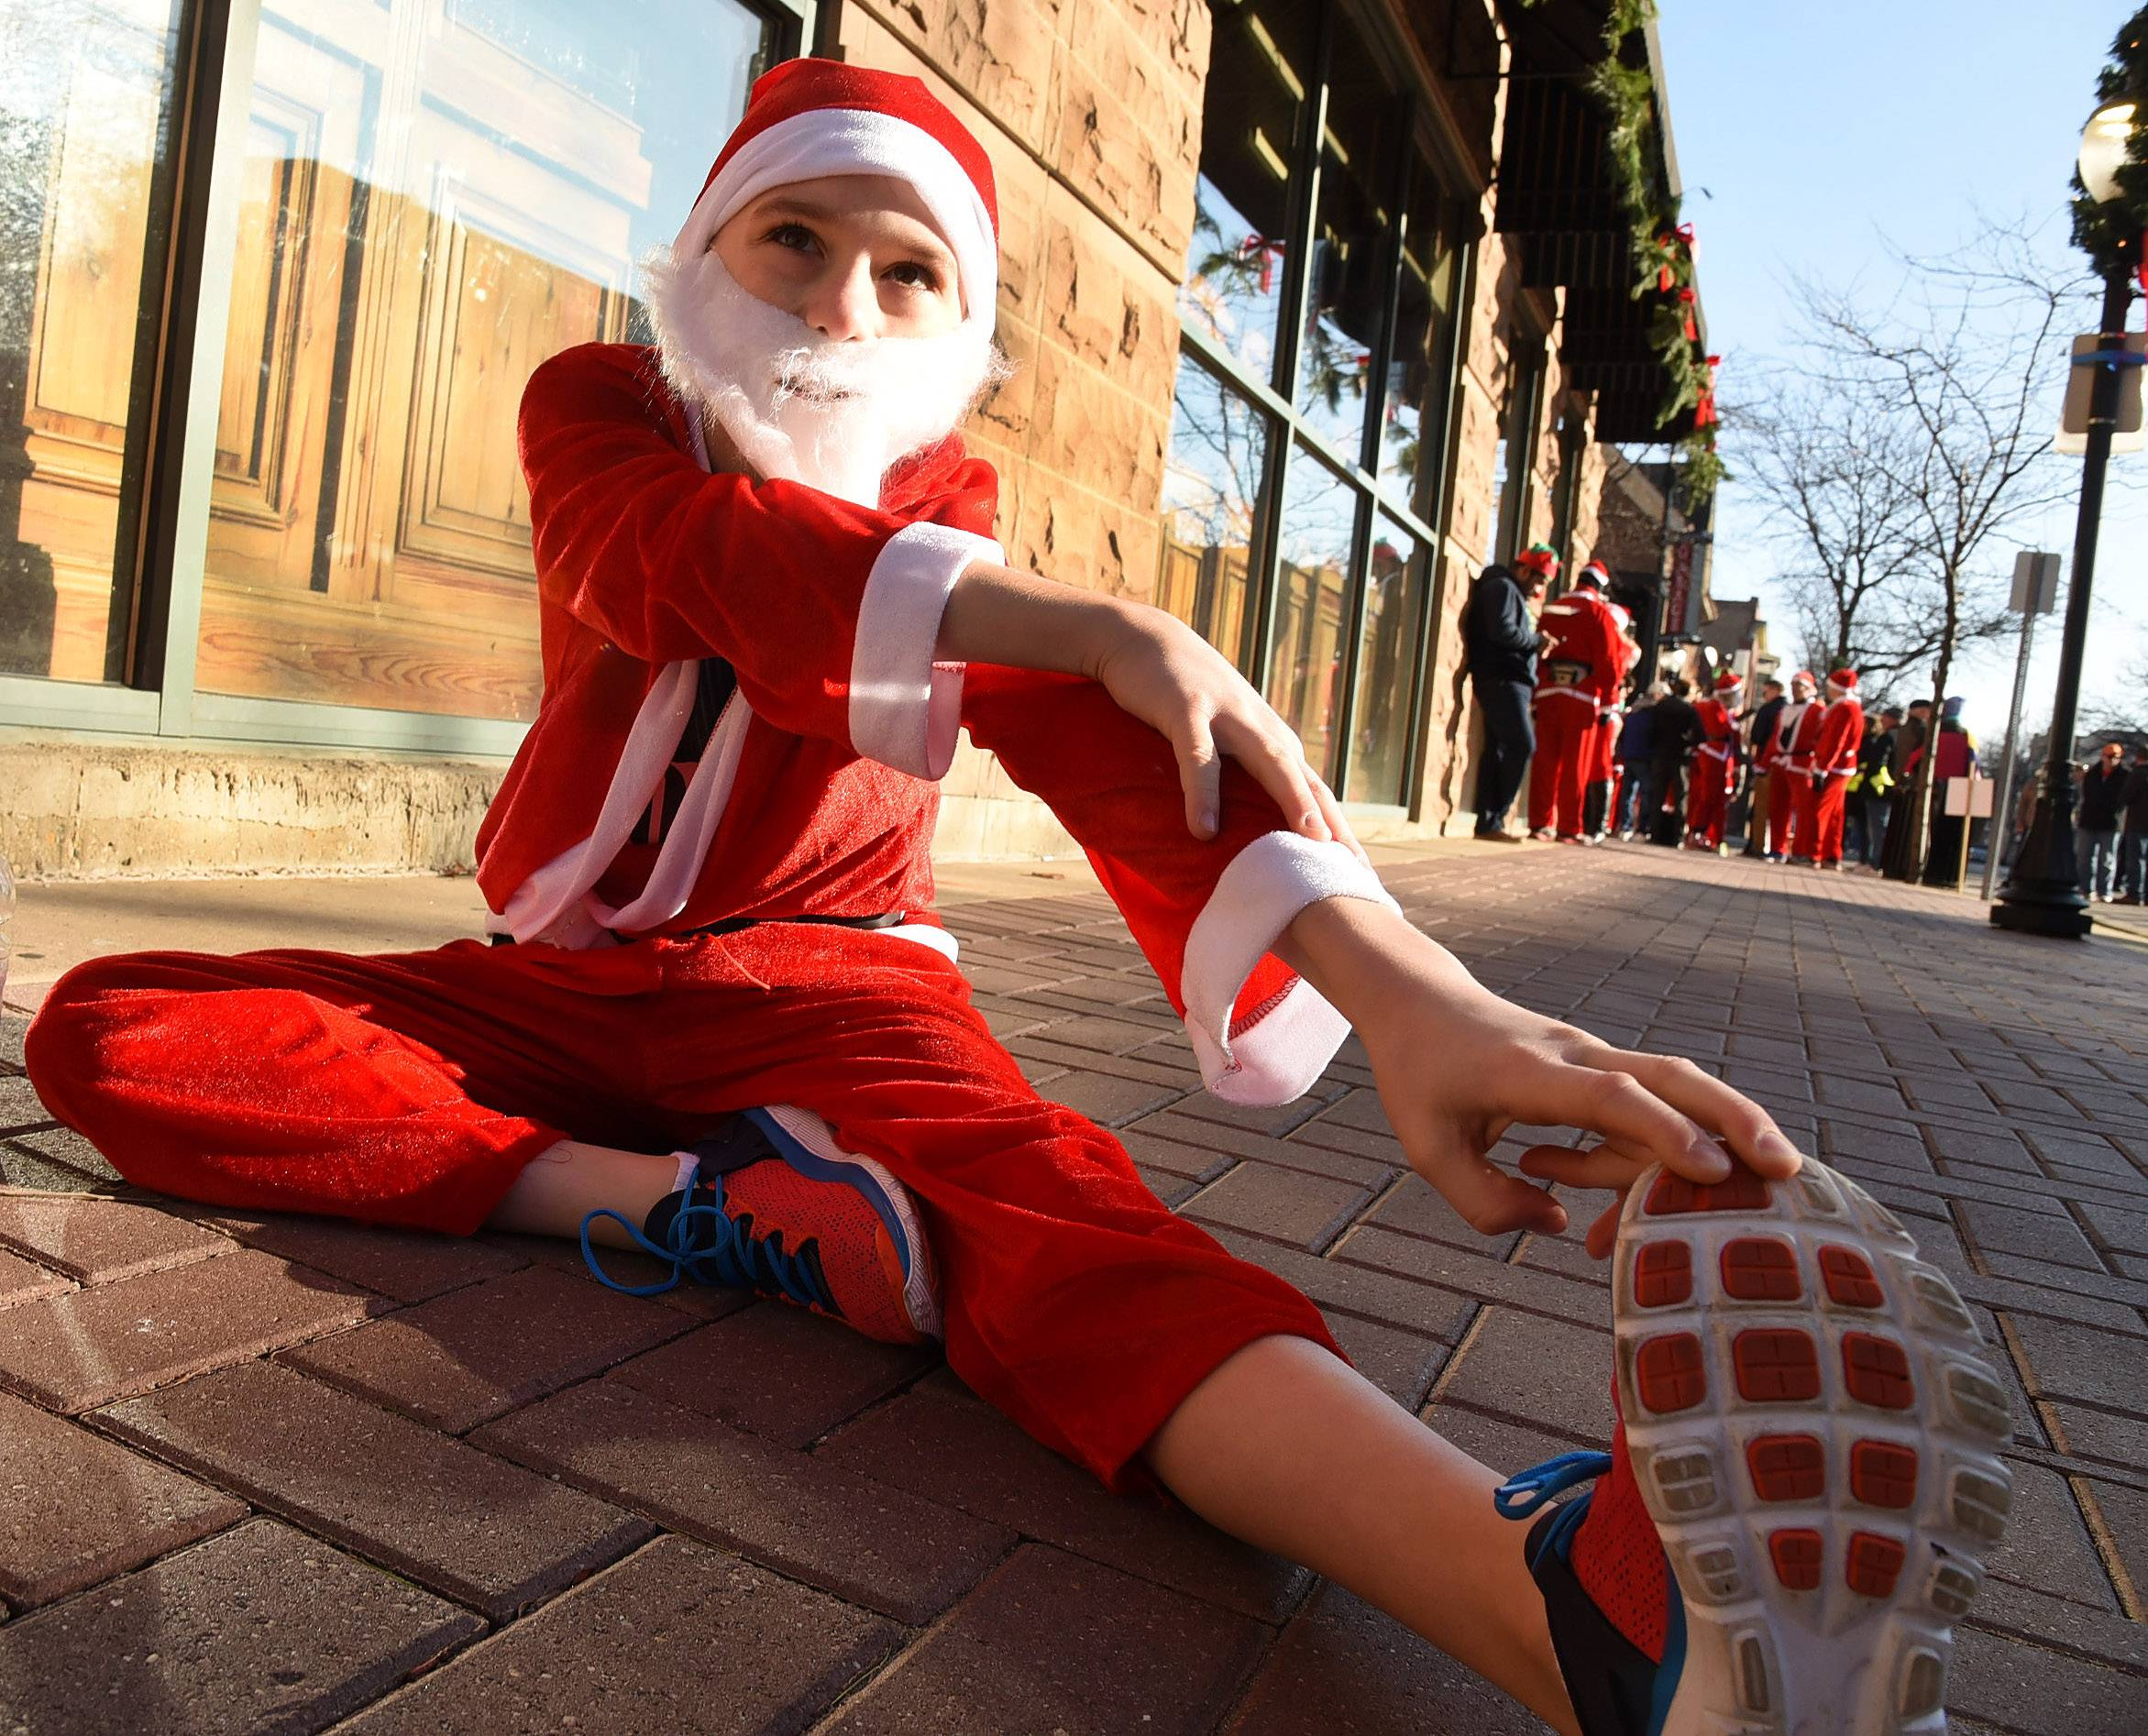 Bob Chwedyk/bchwedyk@dailyherald.com Eleven-year-old Gavin Wright, of Arlington Heights stretches before the start of the annual 5K Santa Run through downtown Arlington Heights.